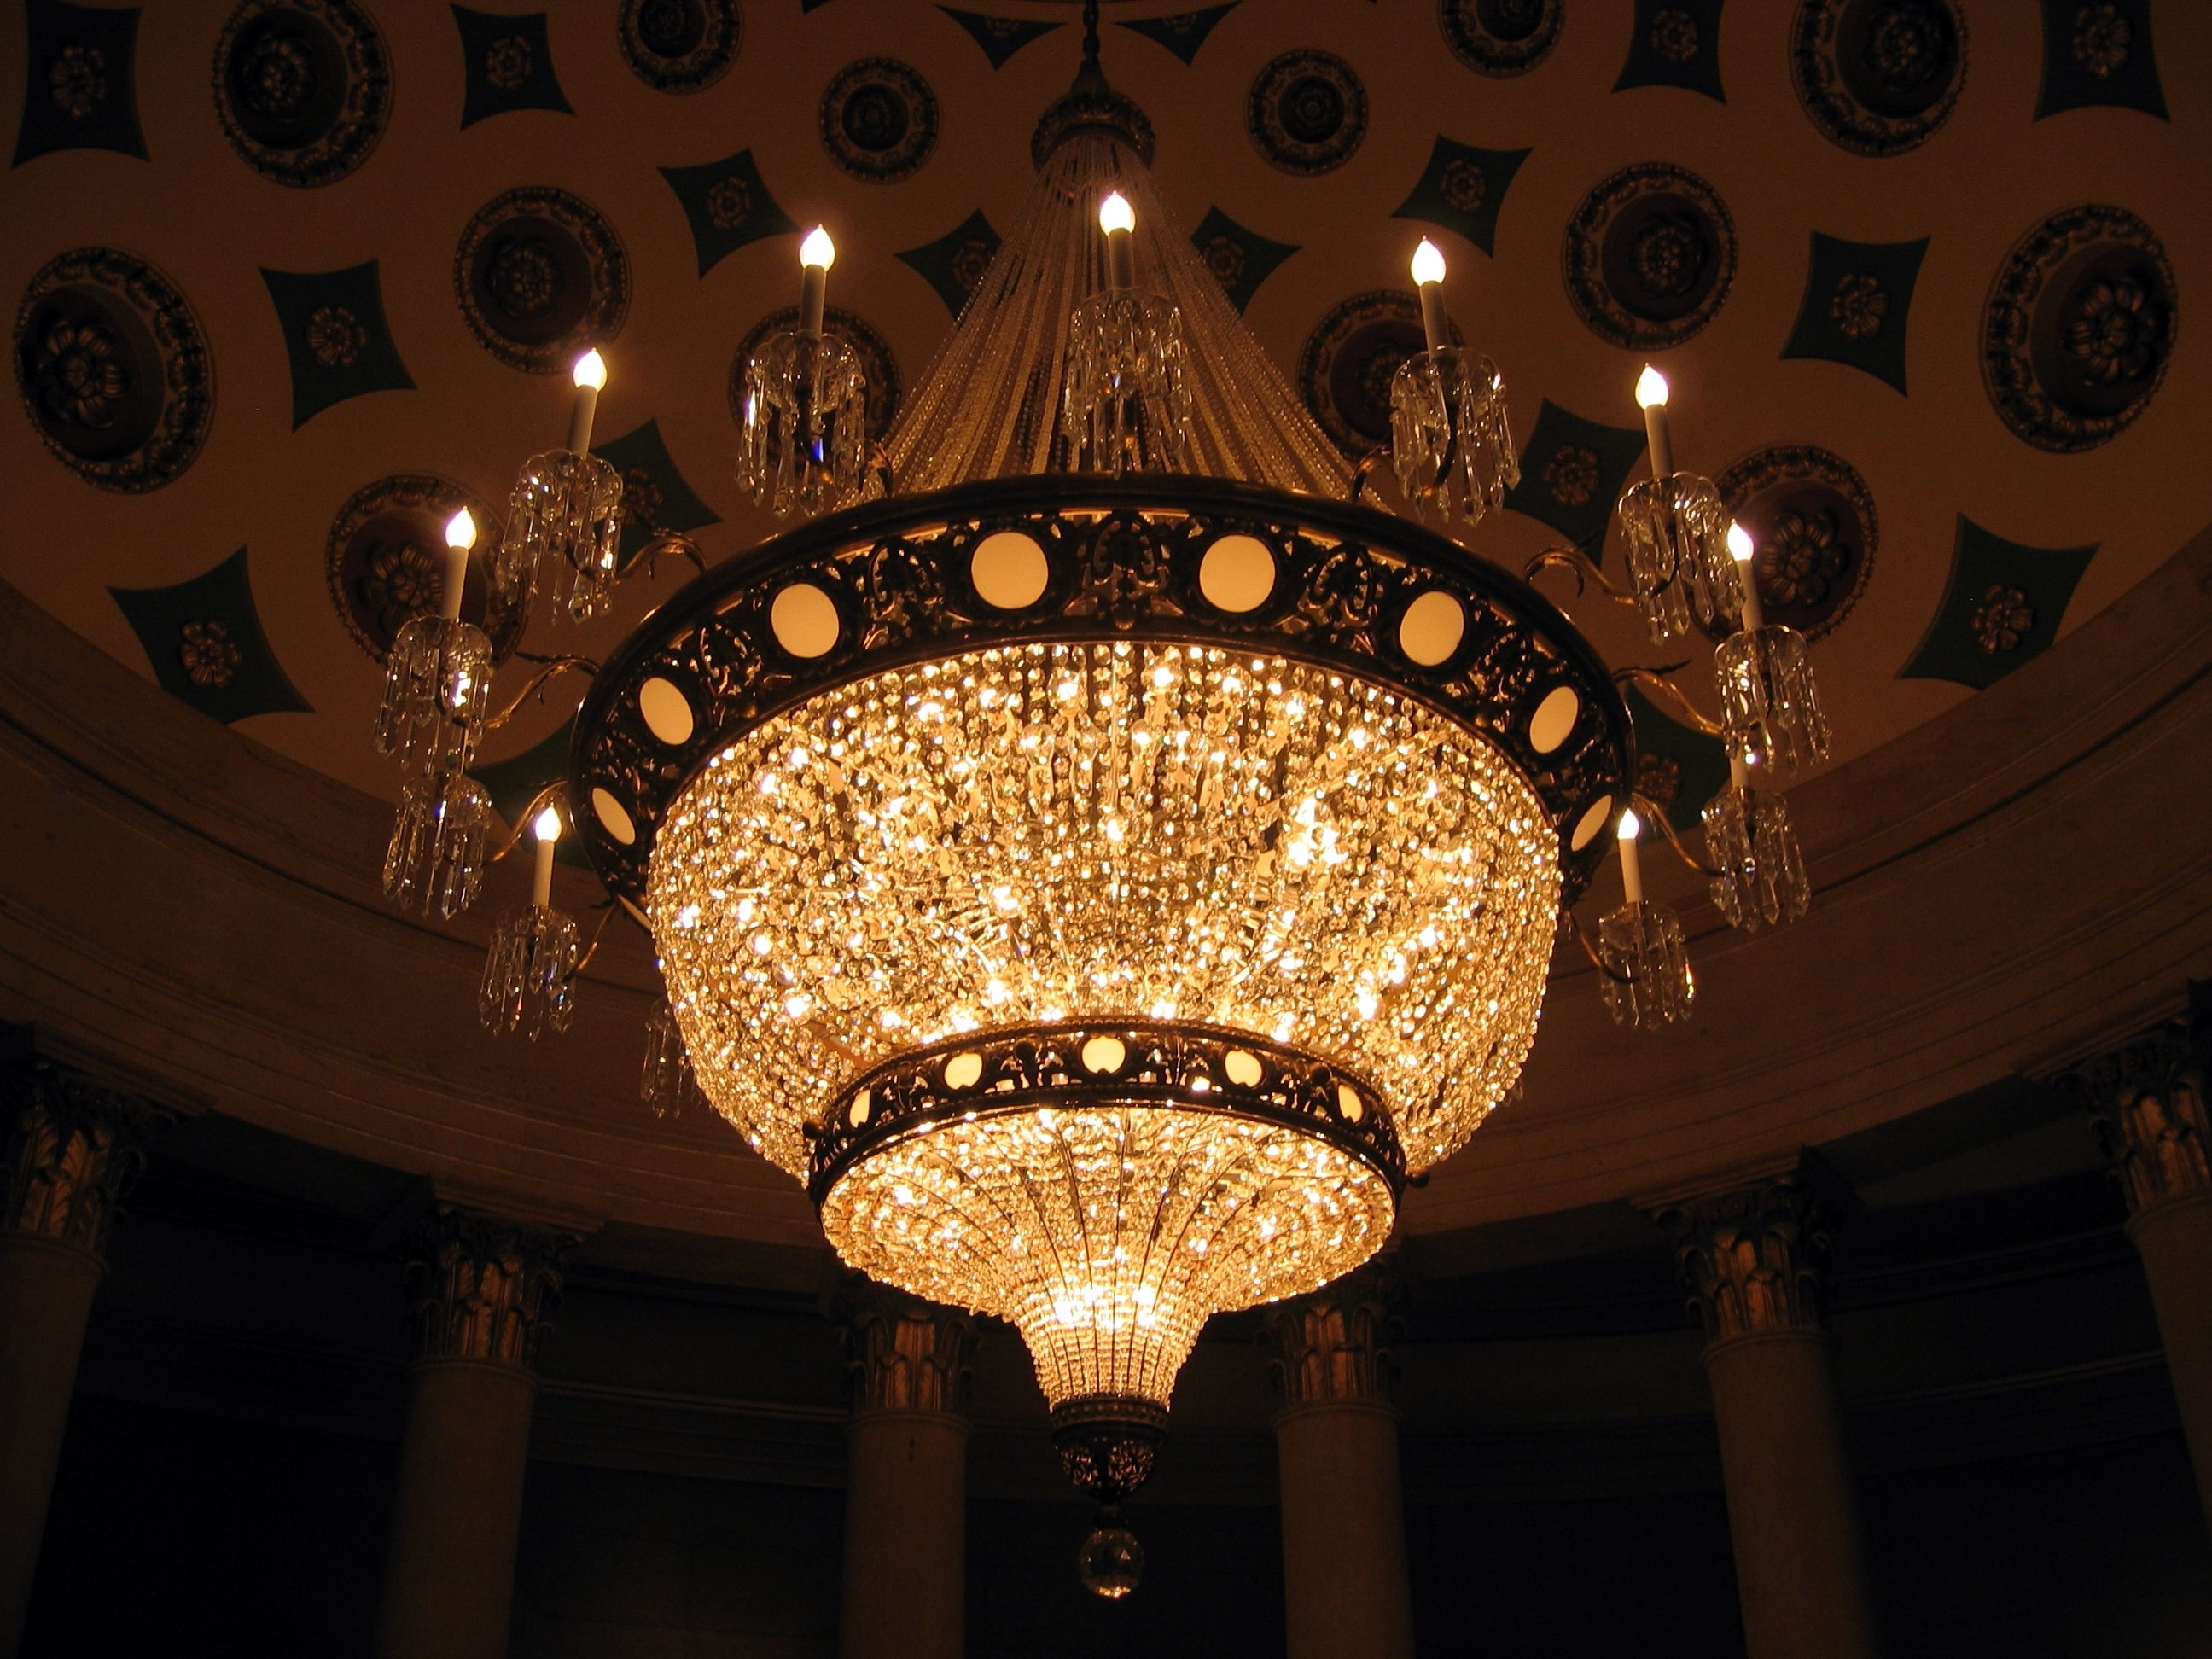 Preferred Expensive Crystal Chandeliers Pertaining To Top 10 Most Expensive Chandeliers In The World – Design Limited Edition (View 8 of 20)